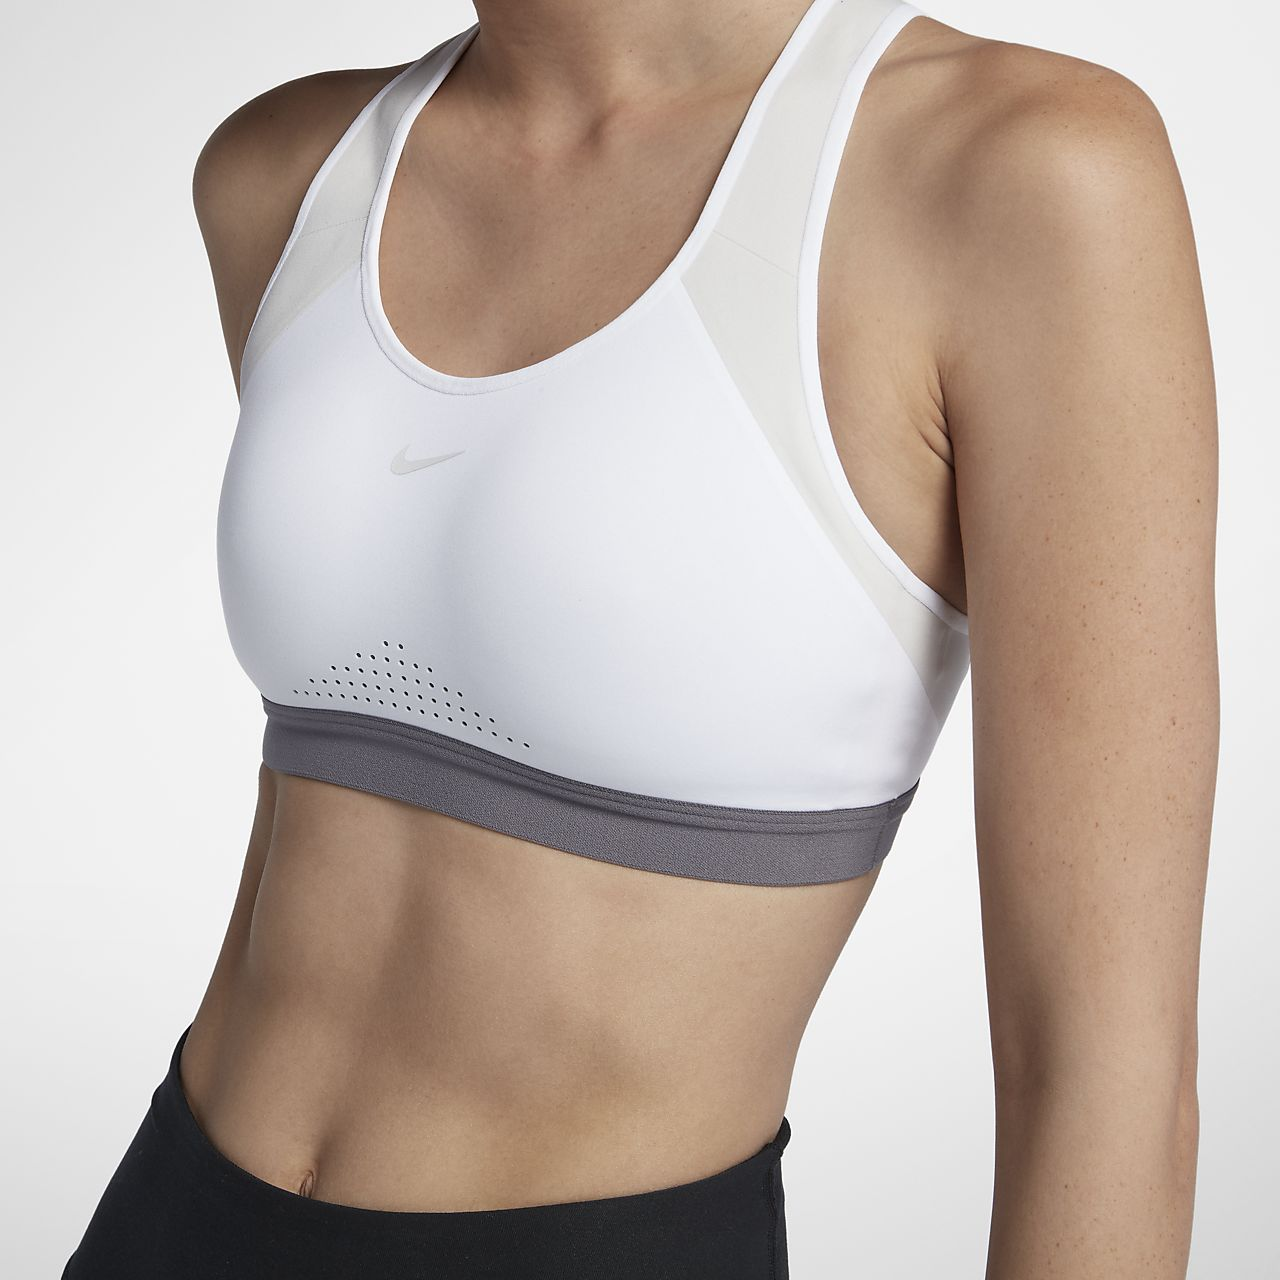 0756d3442cfb6 Nike Motion Adapt Women s Sports Bra. Nike.com